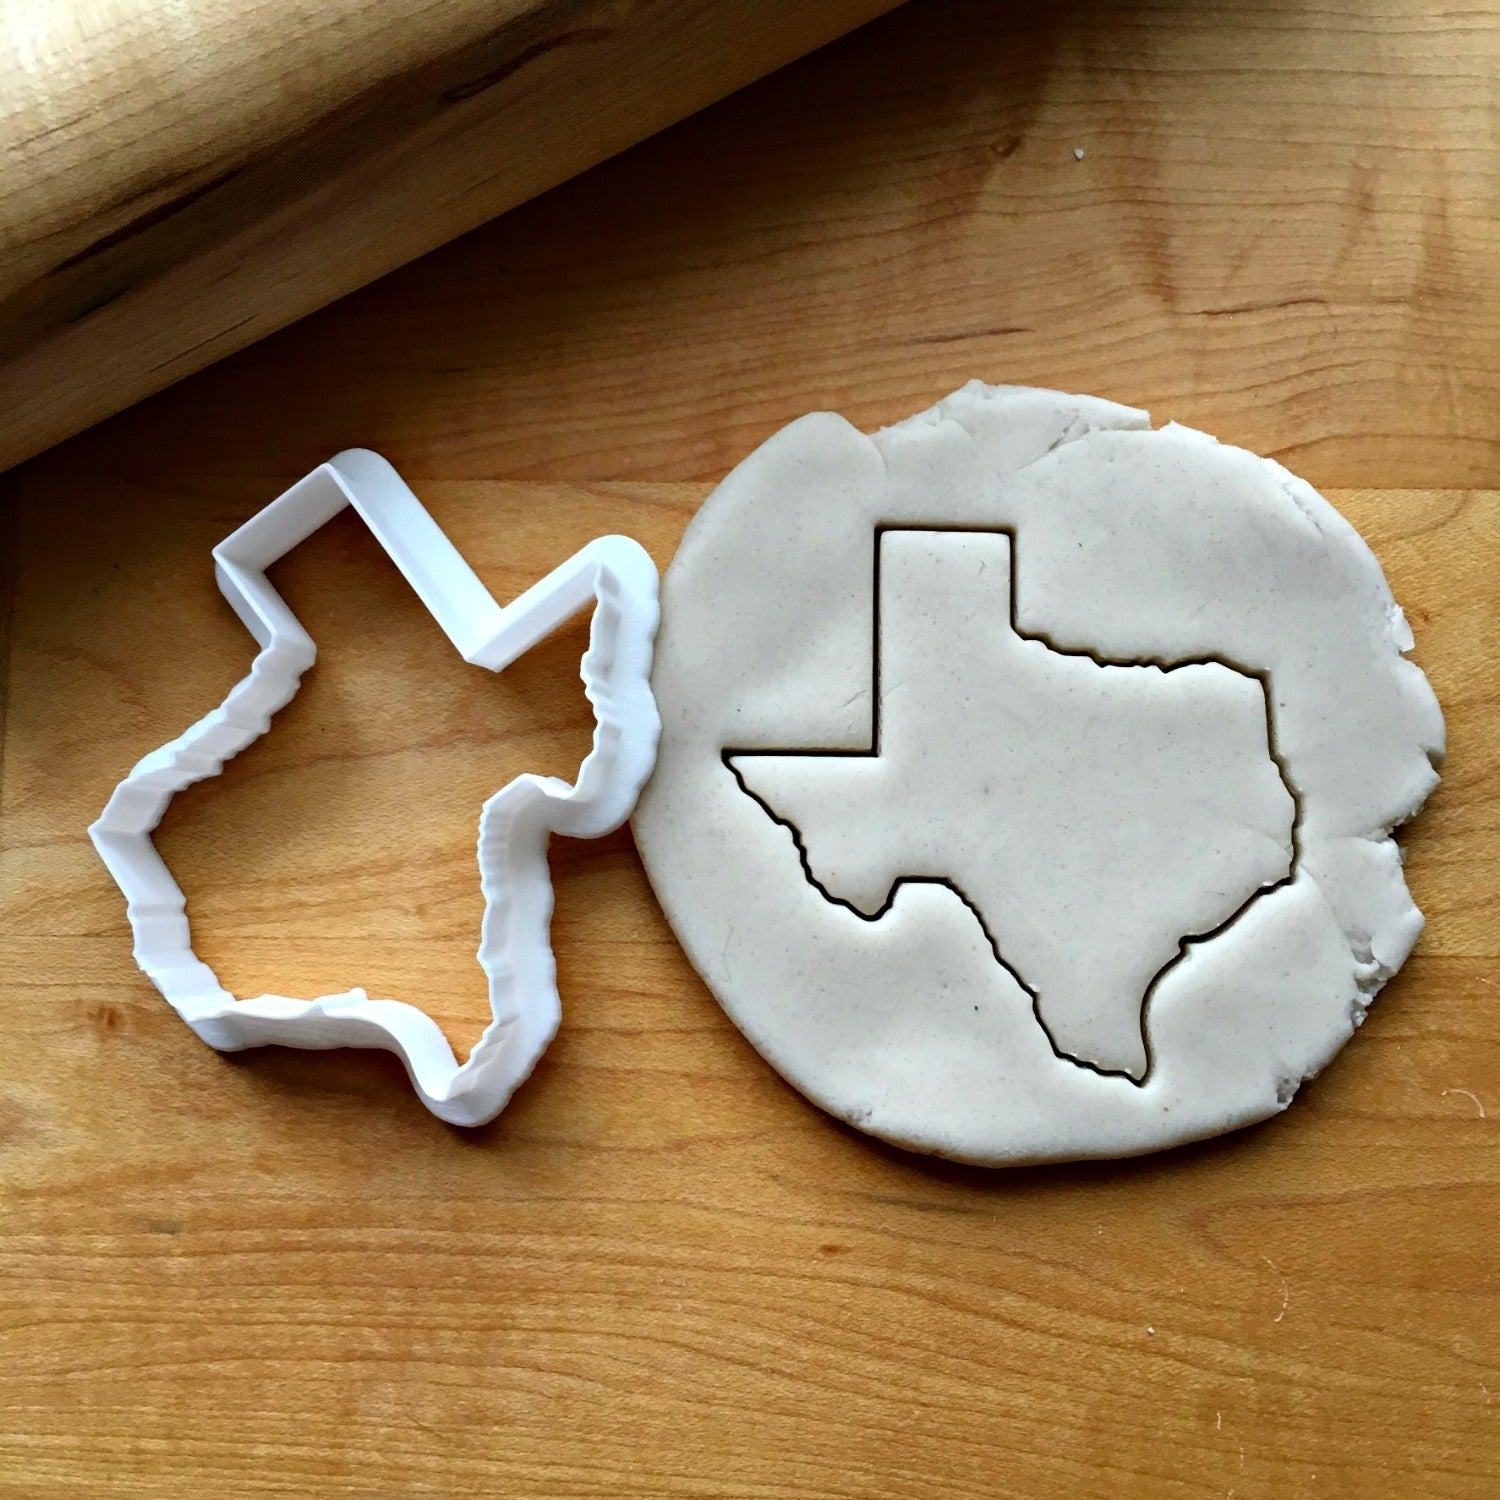 State of Texas Cookie Cutter/Dishwasher Safe